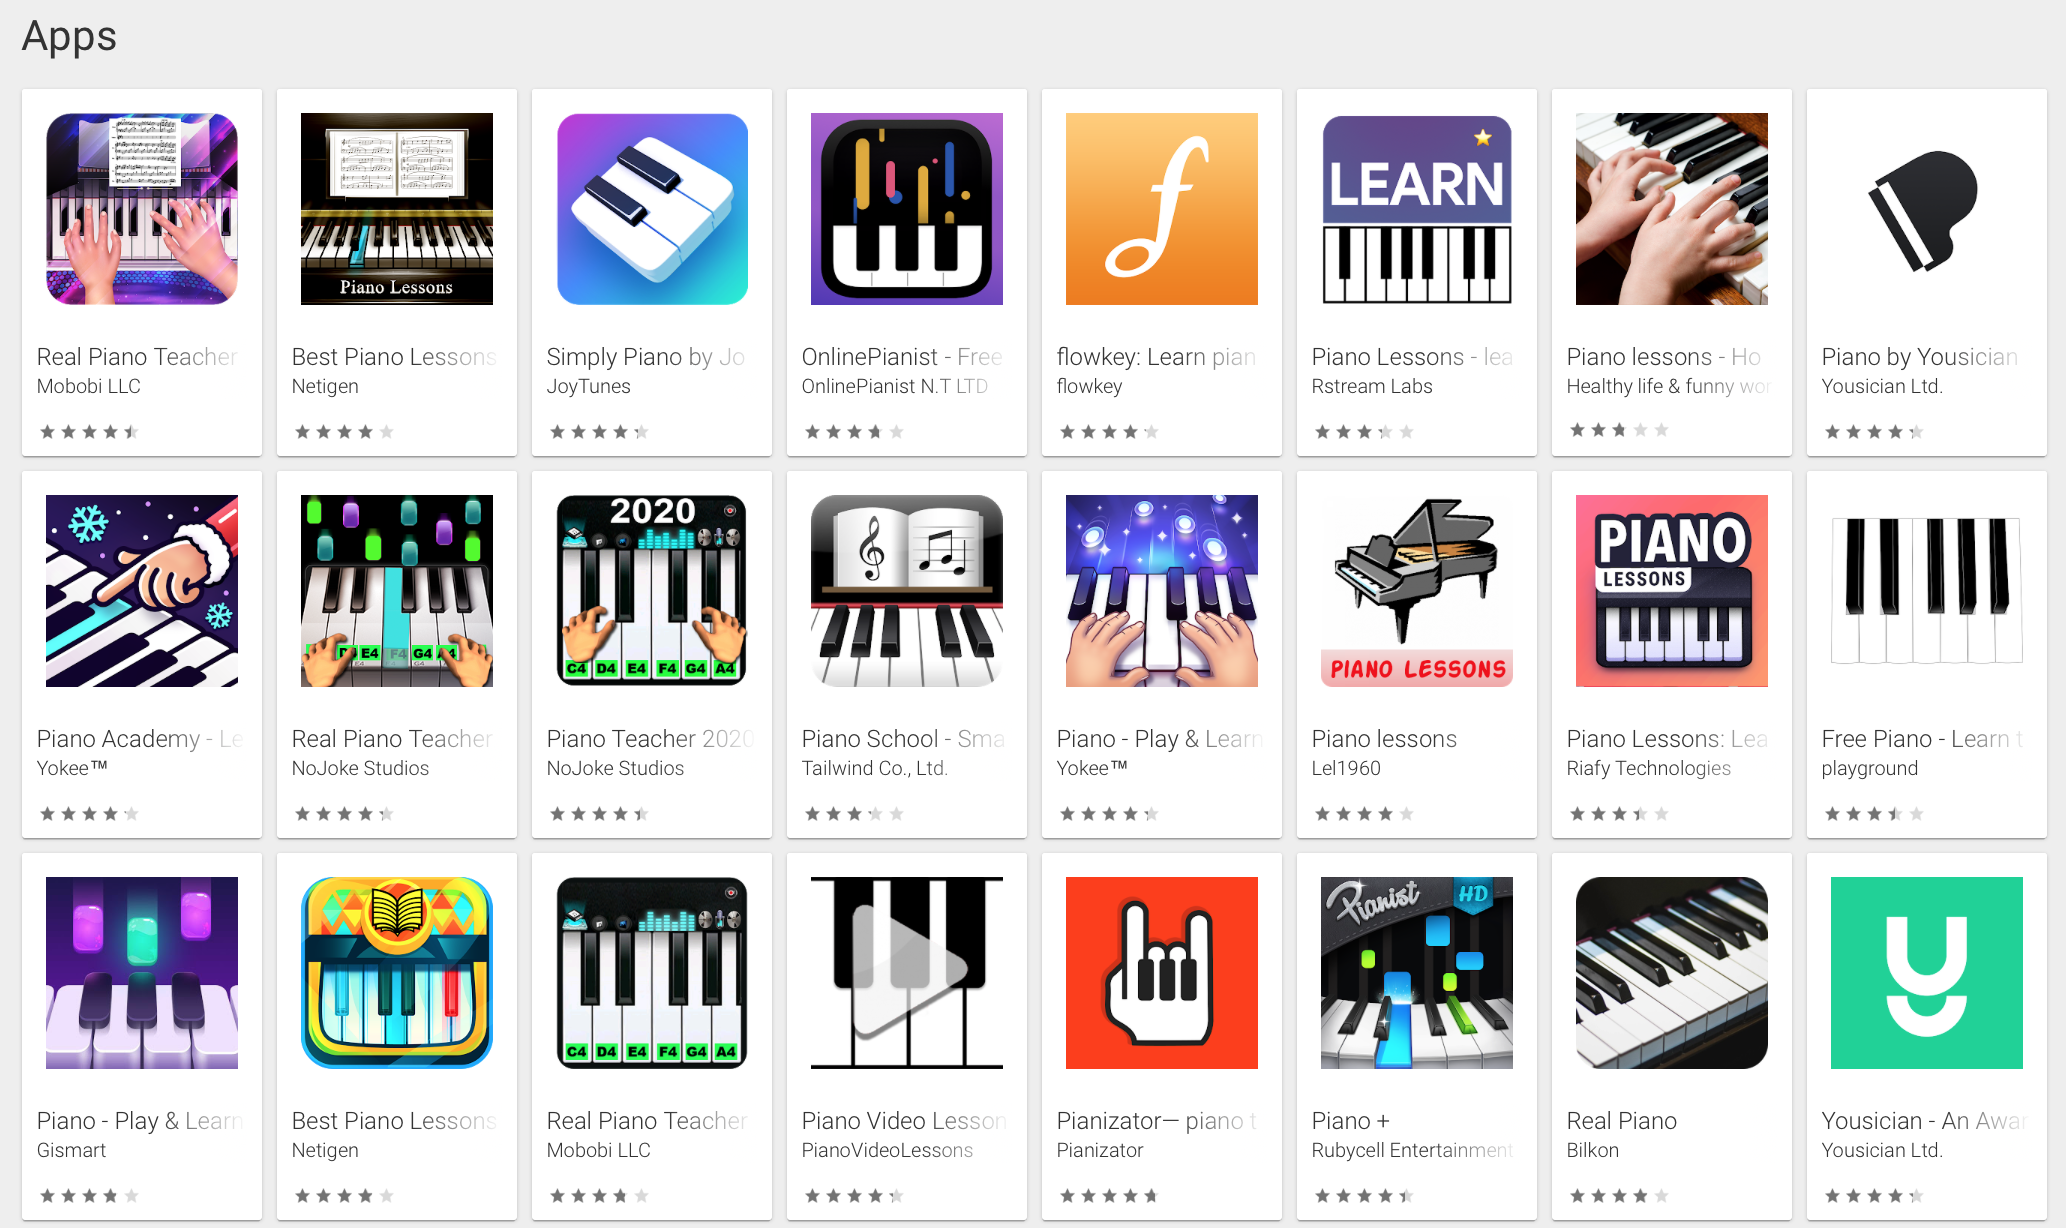 Mobile app optimization: Screenshot of a search results page on the Google Play store